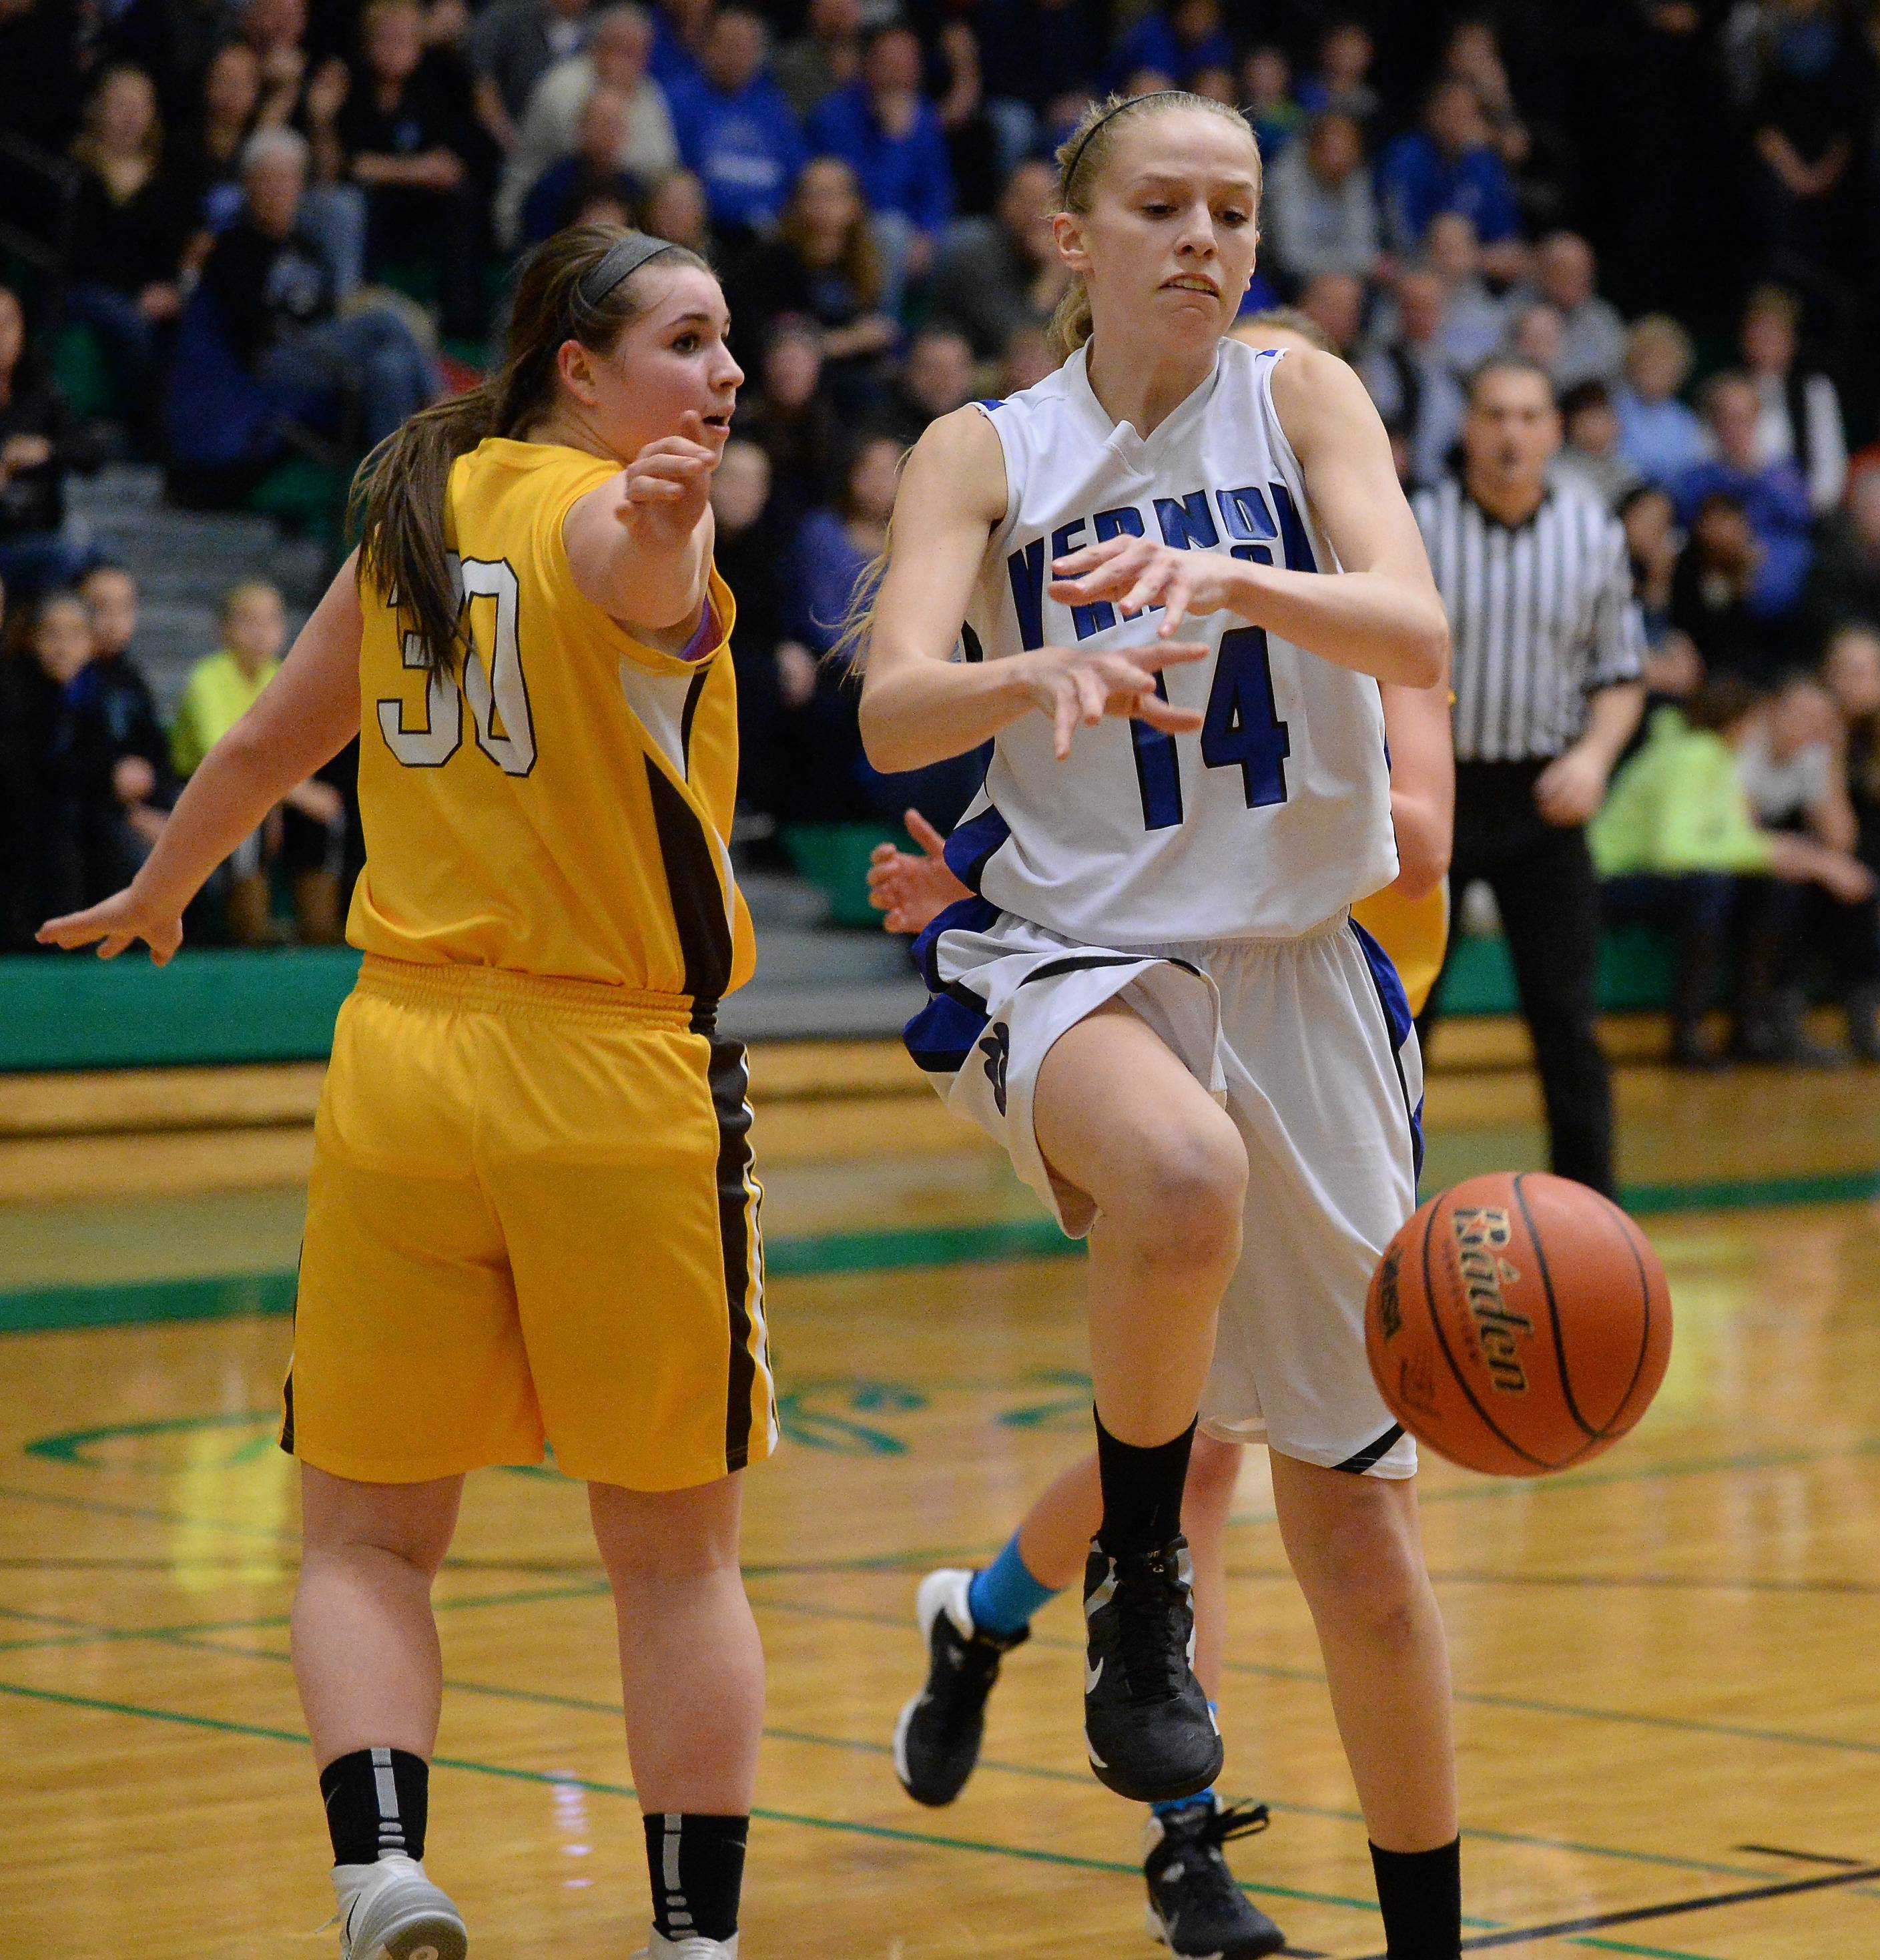 Images from the Vernon Hills vs. Carmel girls basketball game on Thursday, February 27 in Norridge.